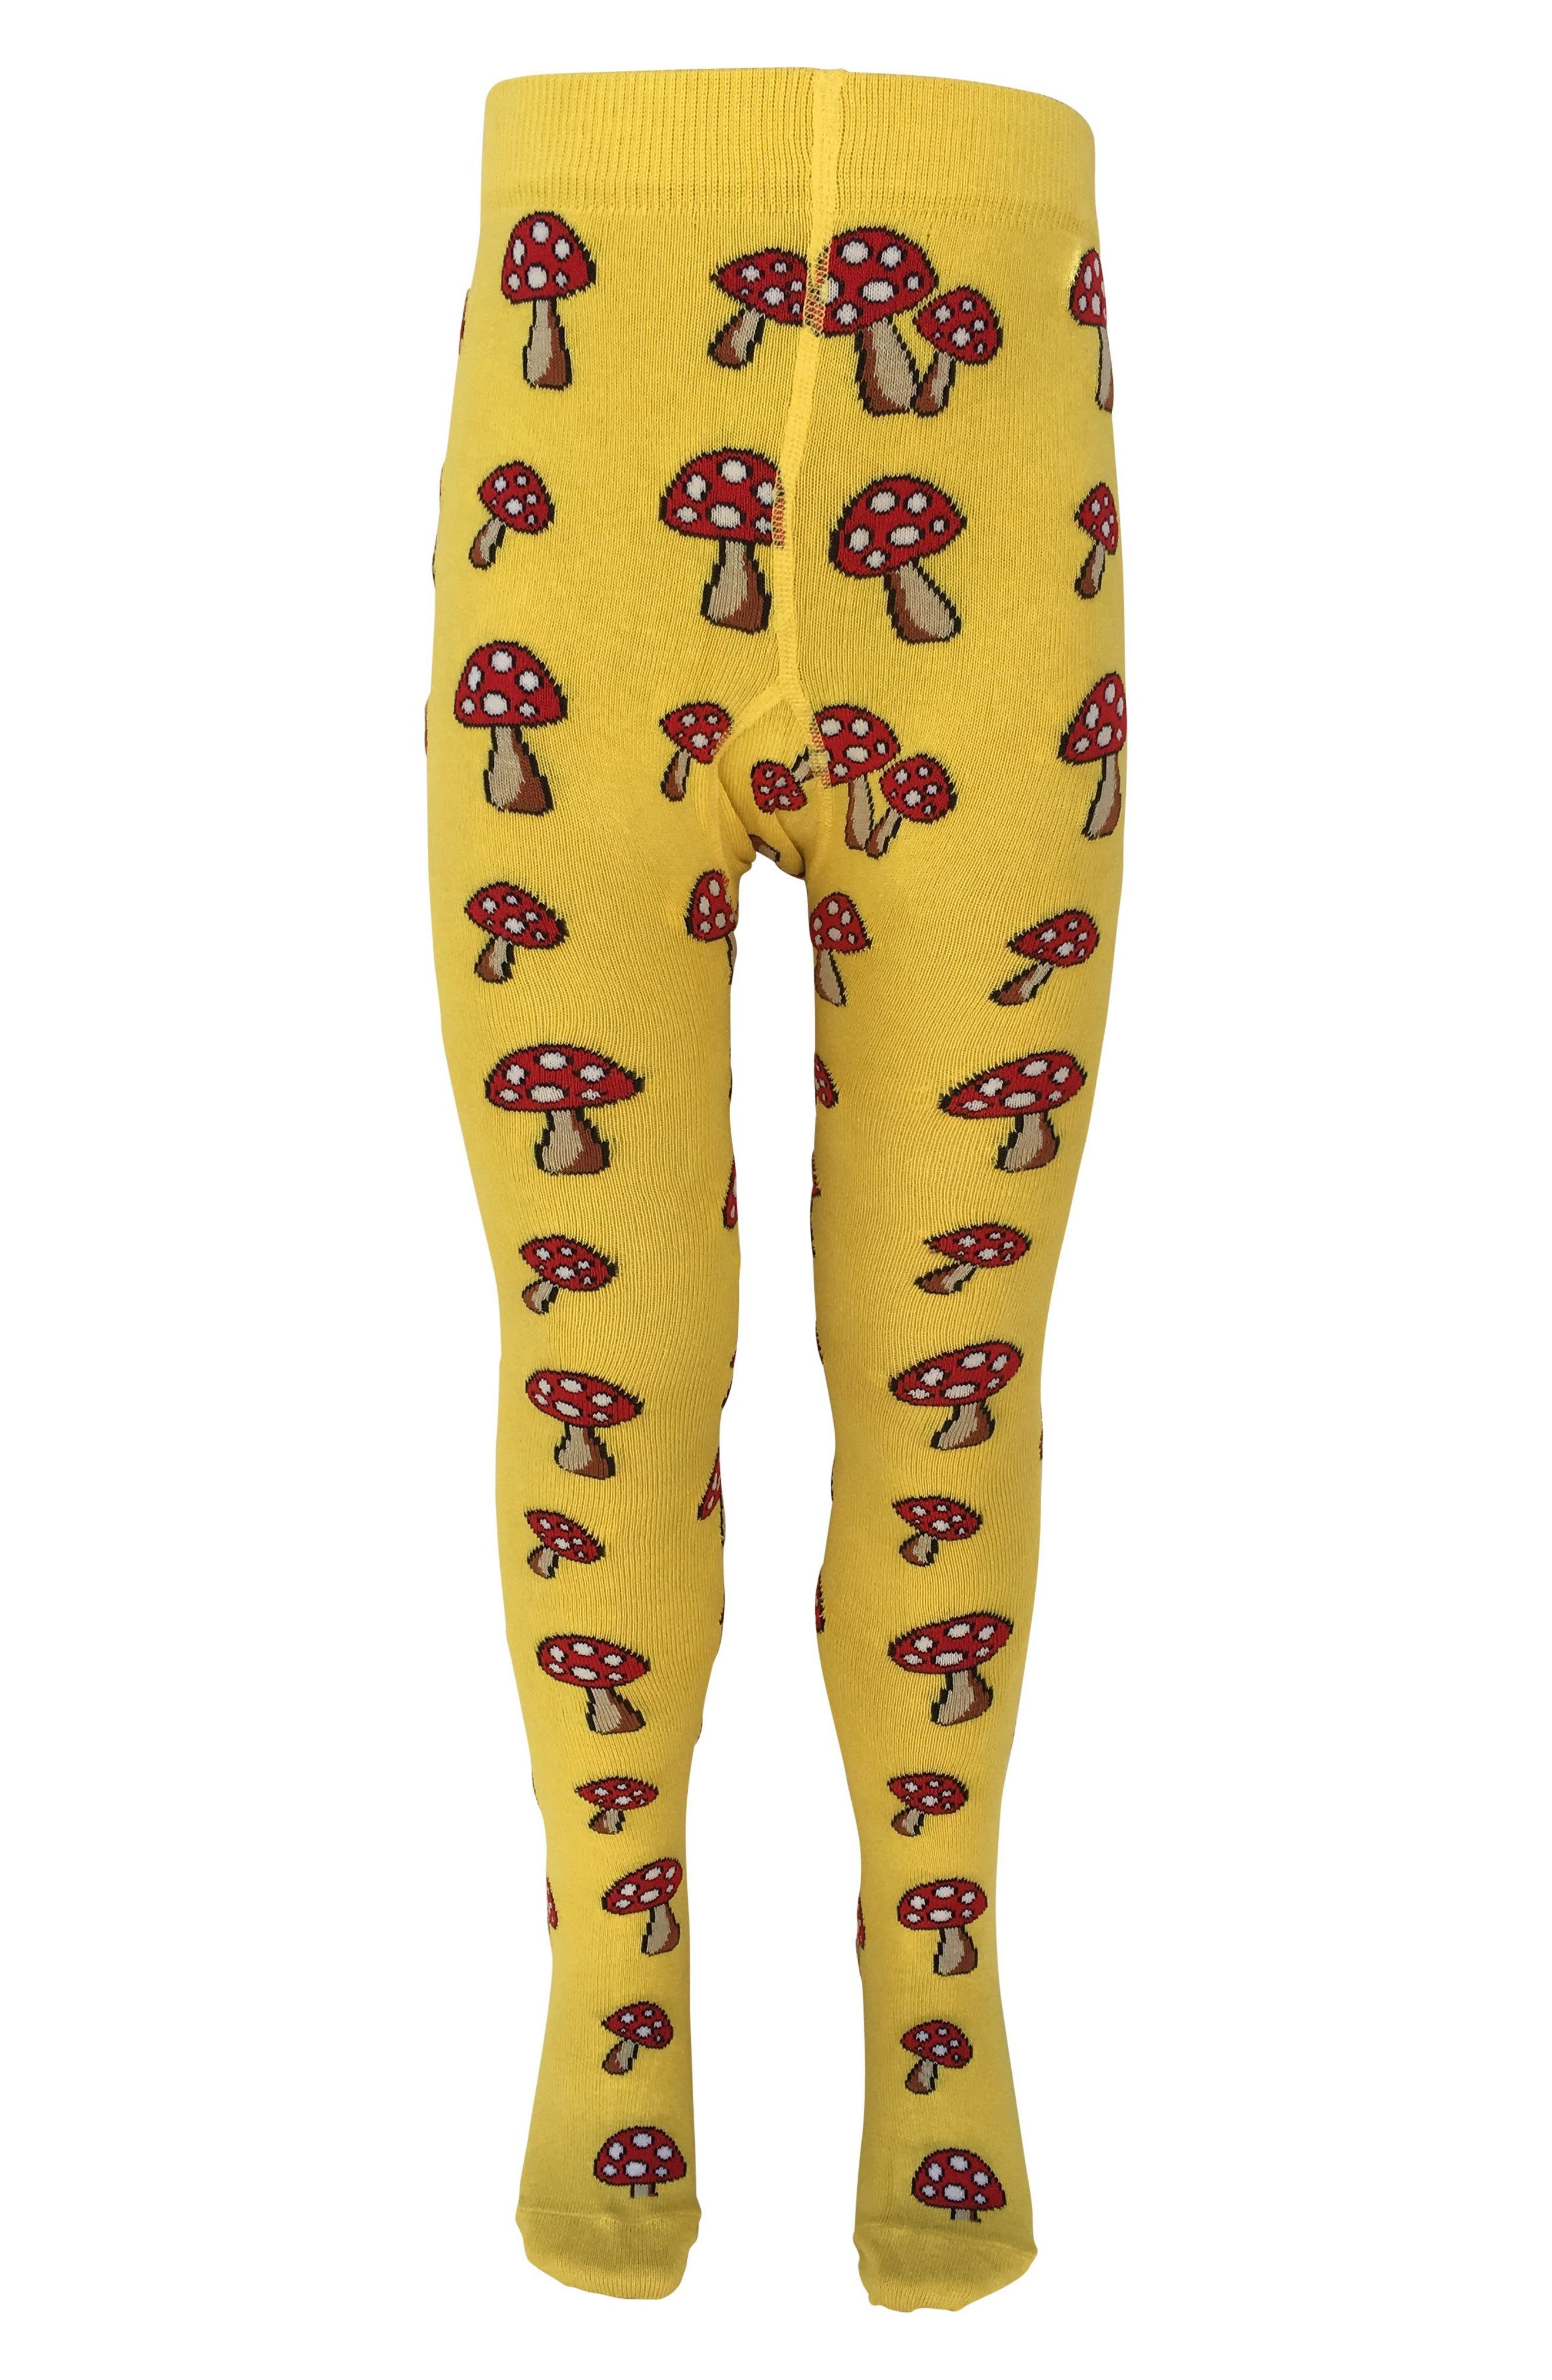 Toadstool Tights,                         Main,                         color, Yellow